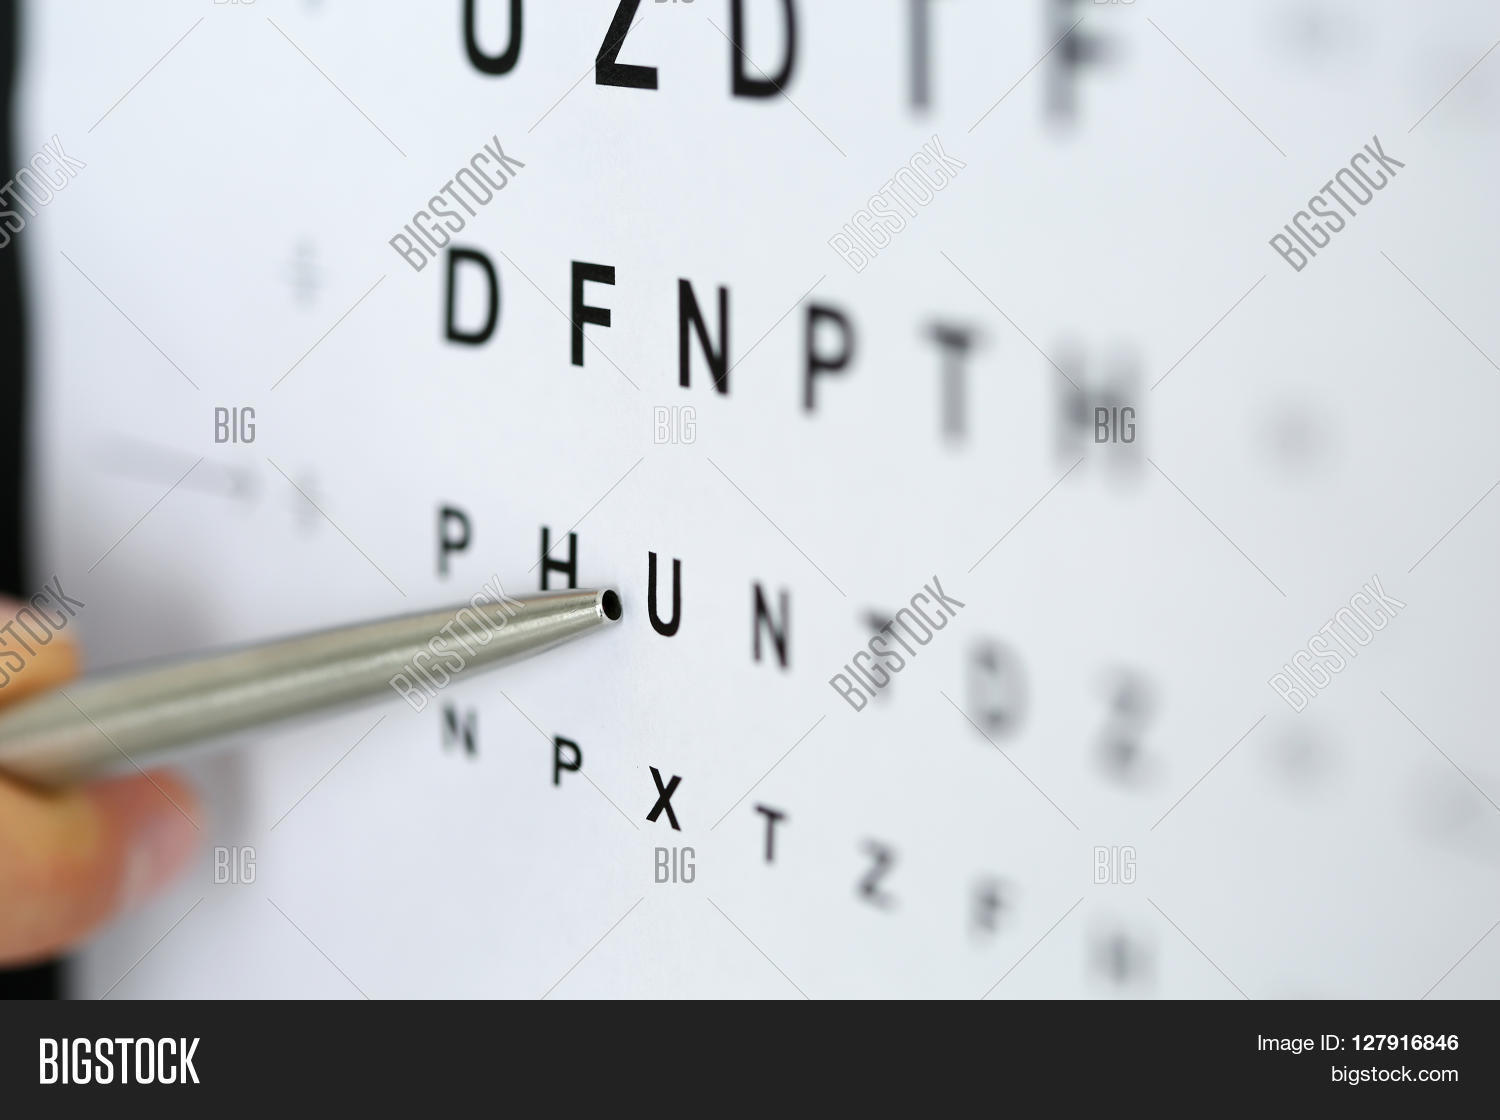 acuity,astigmatism,care,chart,check,closeup,concept,correction,cure,deviation,diopter,doctor,eye,eyeglasses,eyesight,eyewear,glasses,health,healthcare,hypermetropia,impairment,lens,letter,measure,medical,medicine,myopia,oculist,ophthalmologist,ophthalmology,optic,optical,optician,optometrist,optometry,pen,point,presbyopia,service,shop,shortsightedness,sight,silver,snellen,spectacles,table,test,treatment,vision,visual